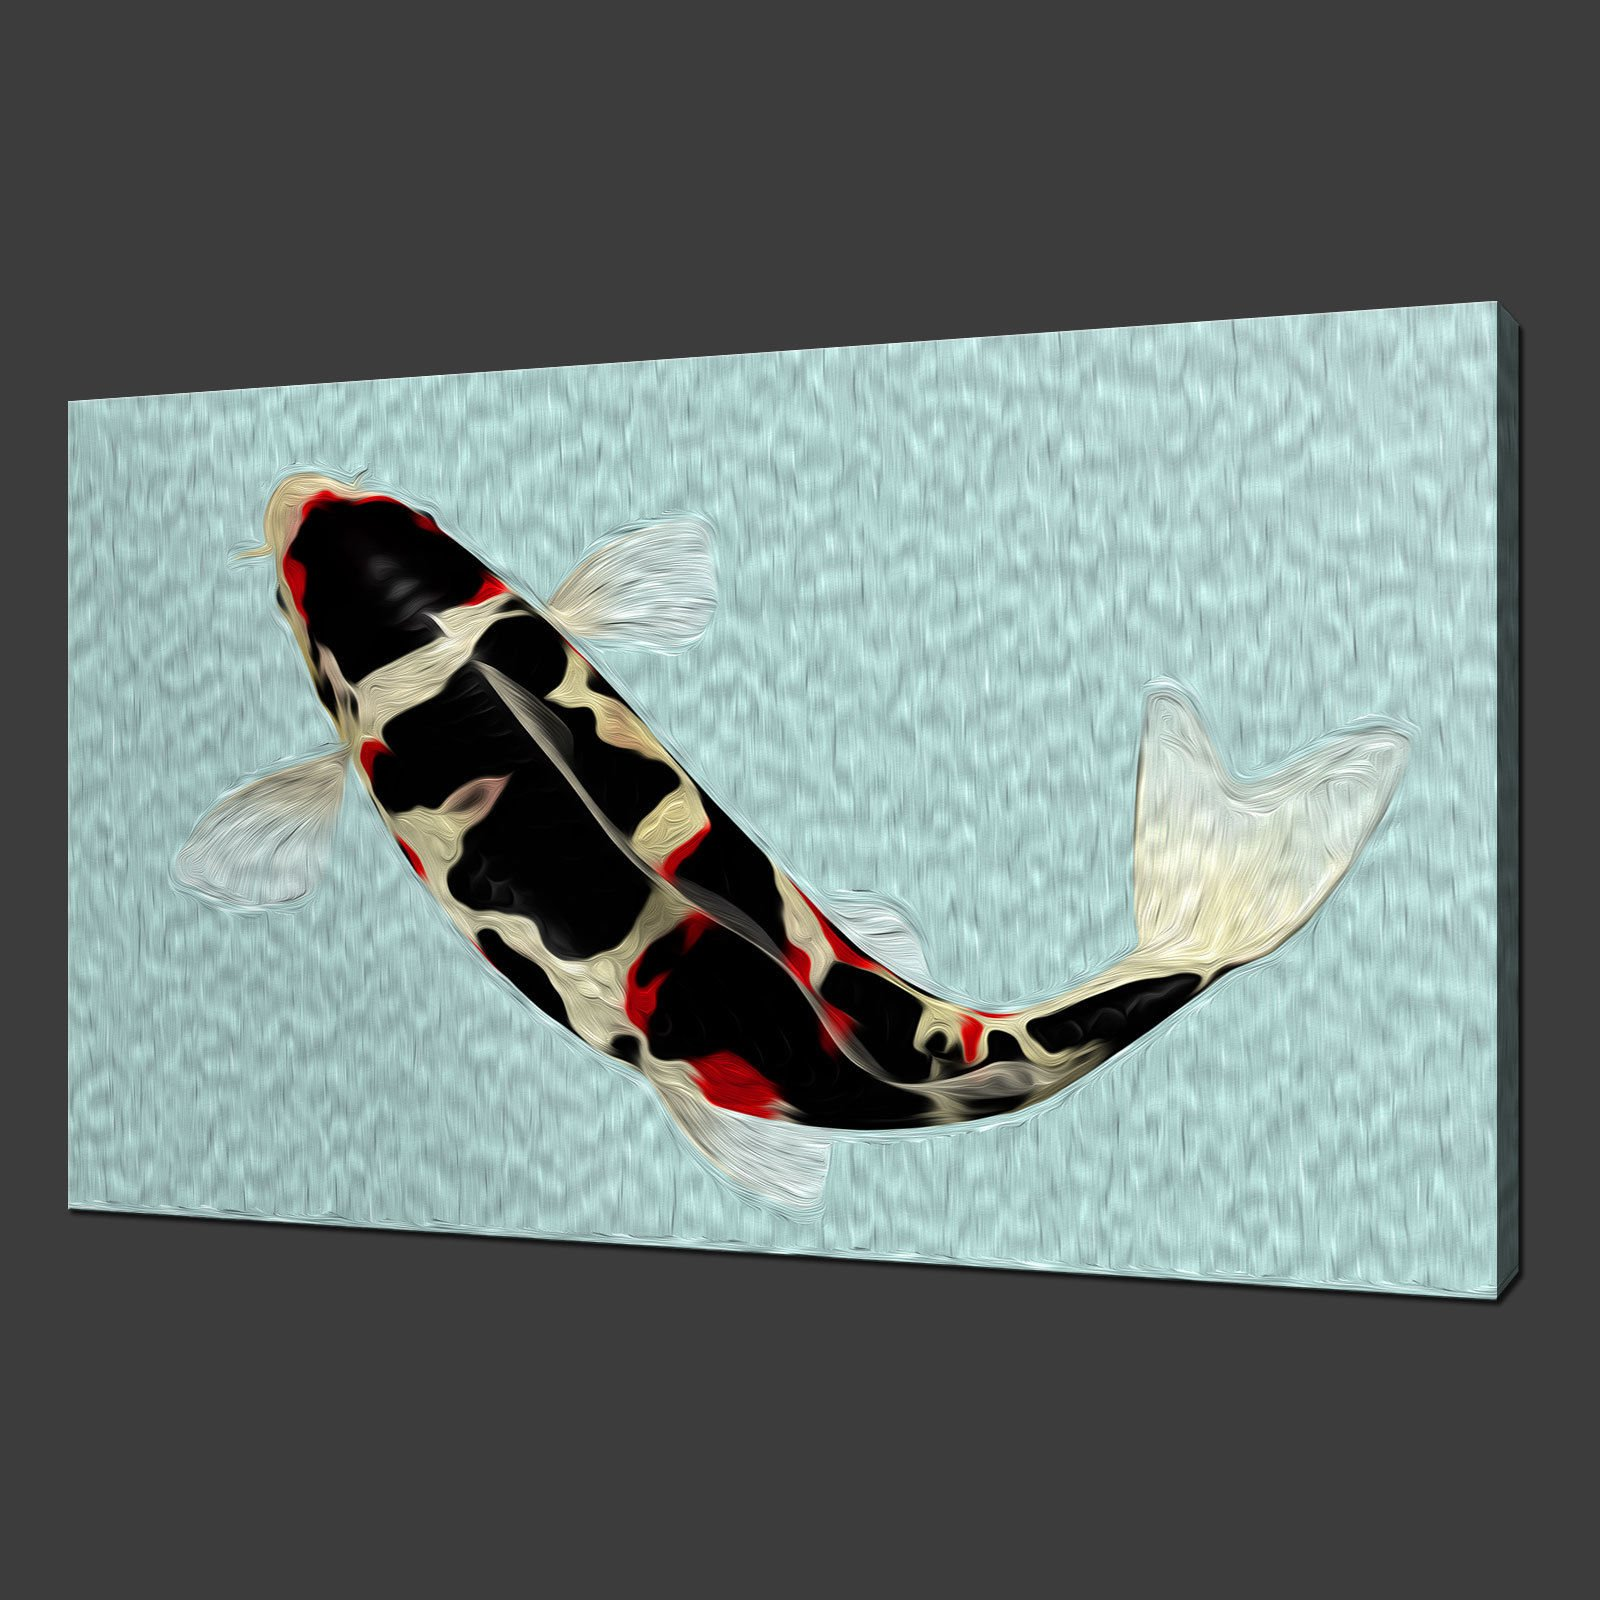 Canvas print pictures high quality handmade free next for Koi canvas print